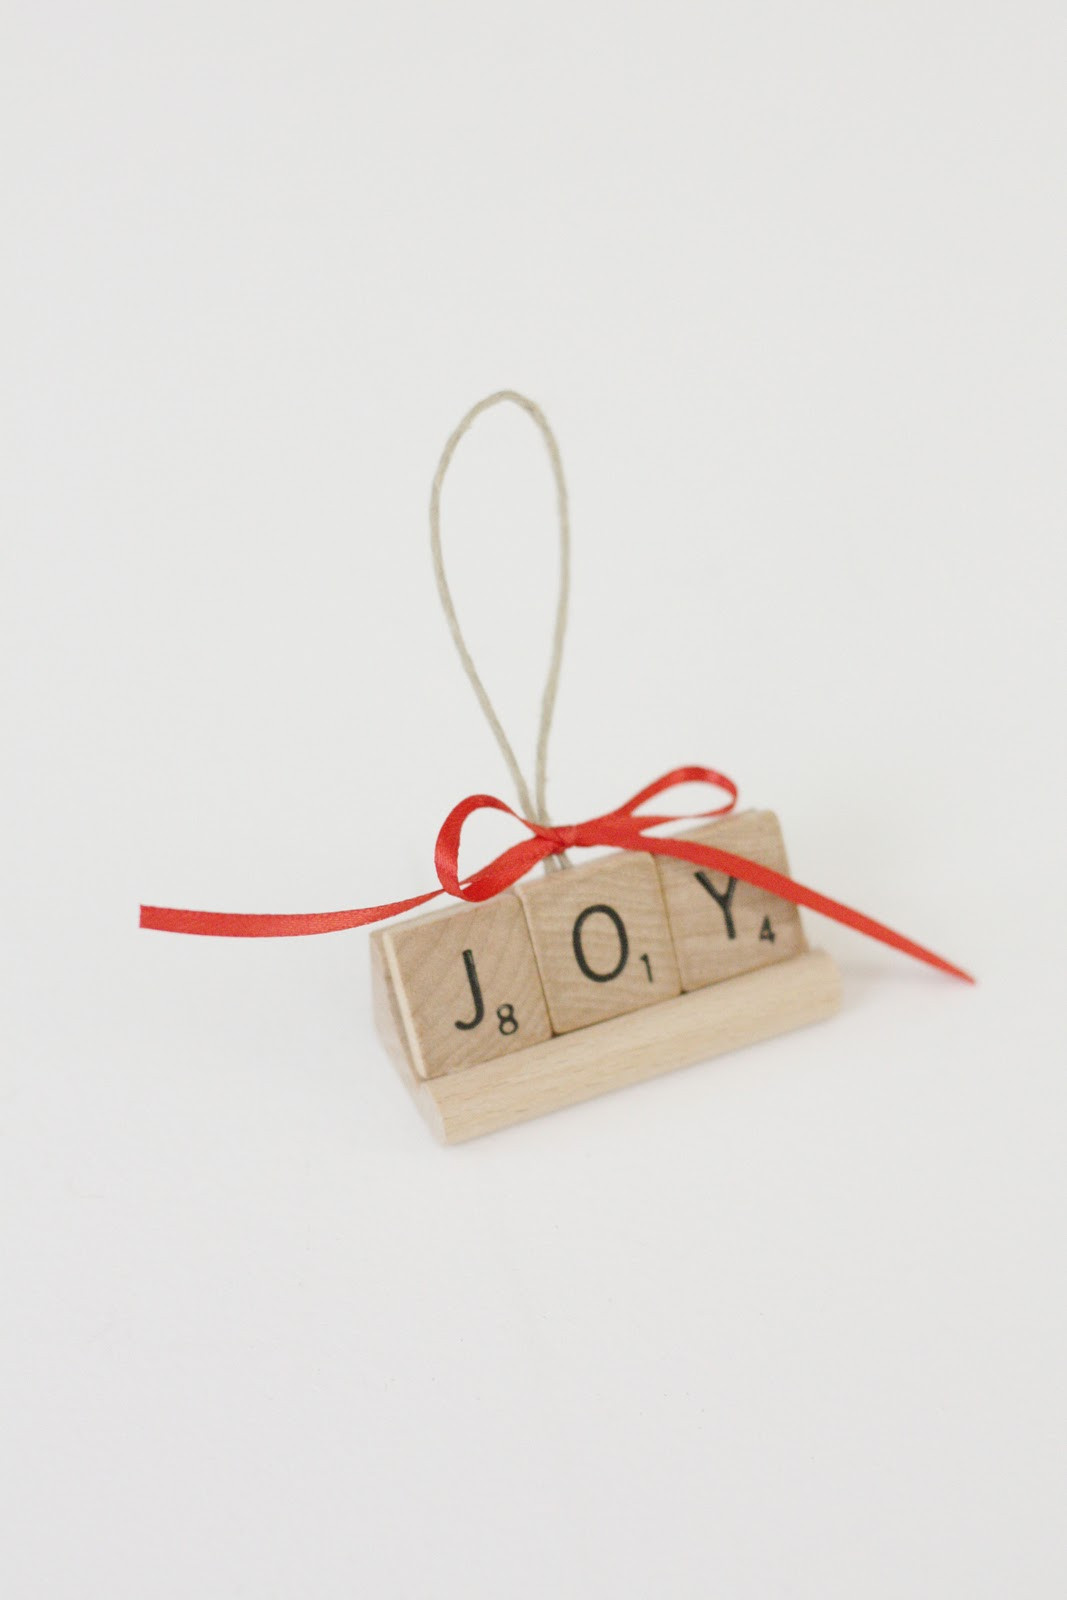 Scrabble Tile Christmas Ornaments  our daily obsessions Christmas scrabble ornament